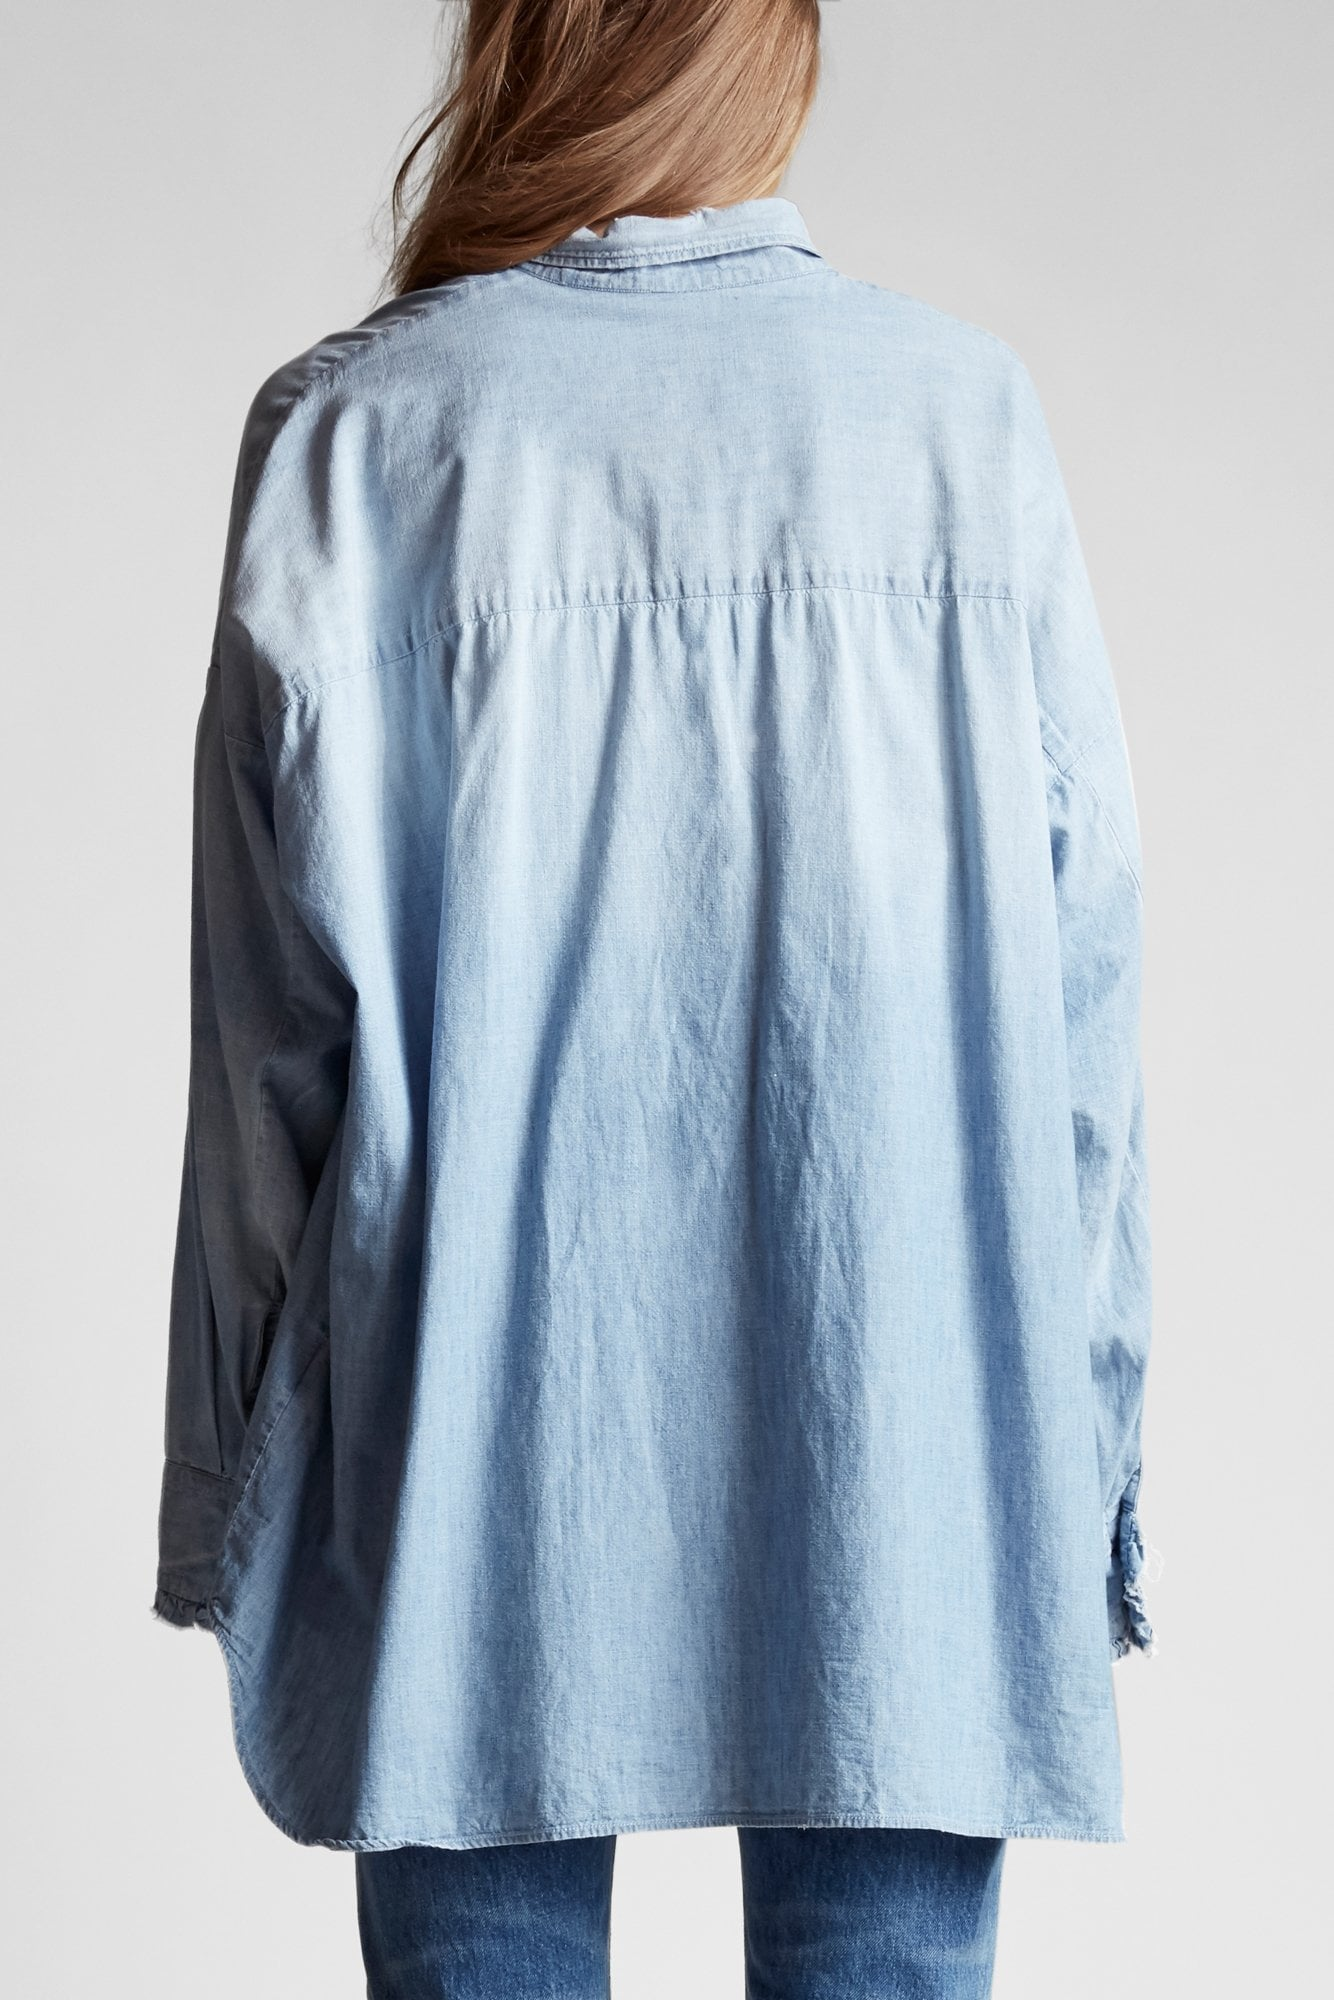 Drop Neck Tuxedo Shirt- Nell Blue